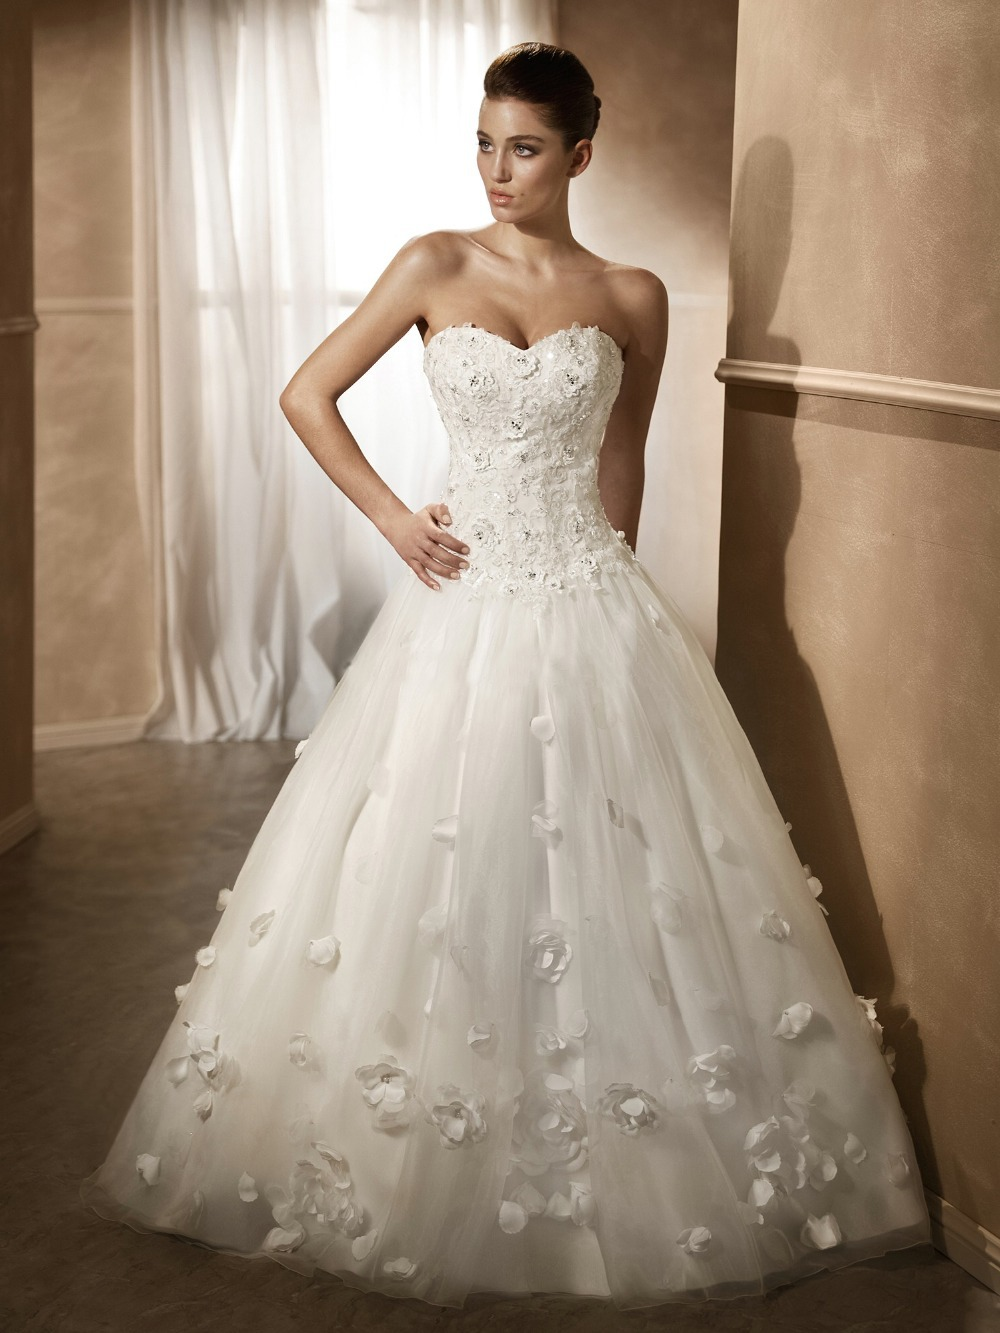 Strapless Long Tail Lace Flowers Ball Gown Buy Wedding Gowns Online ...